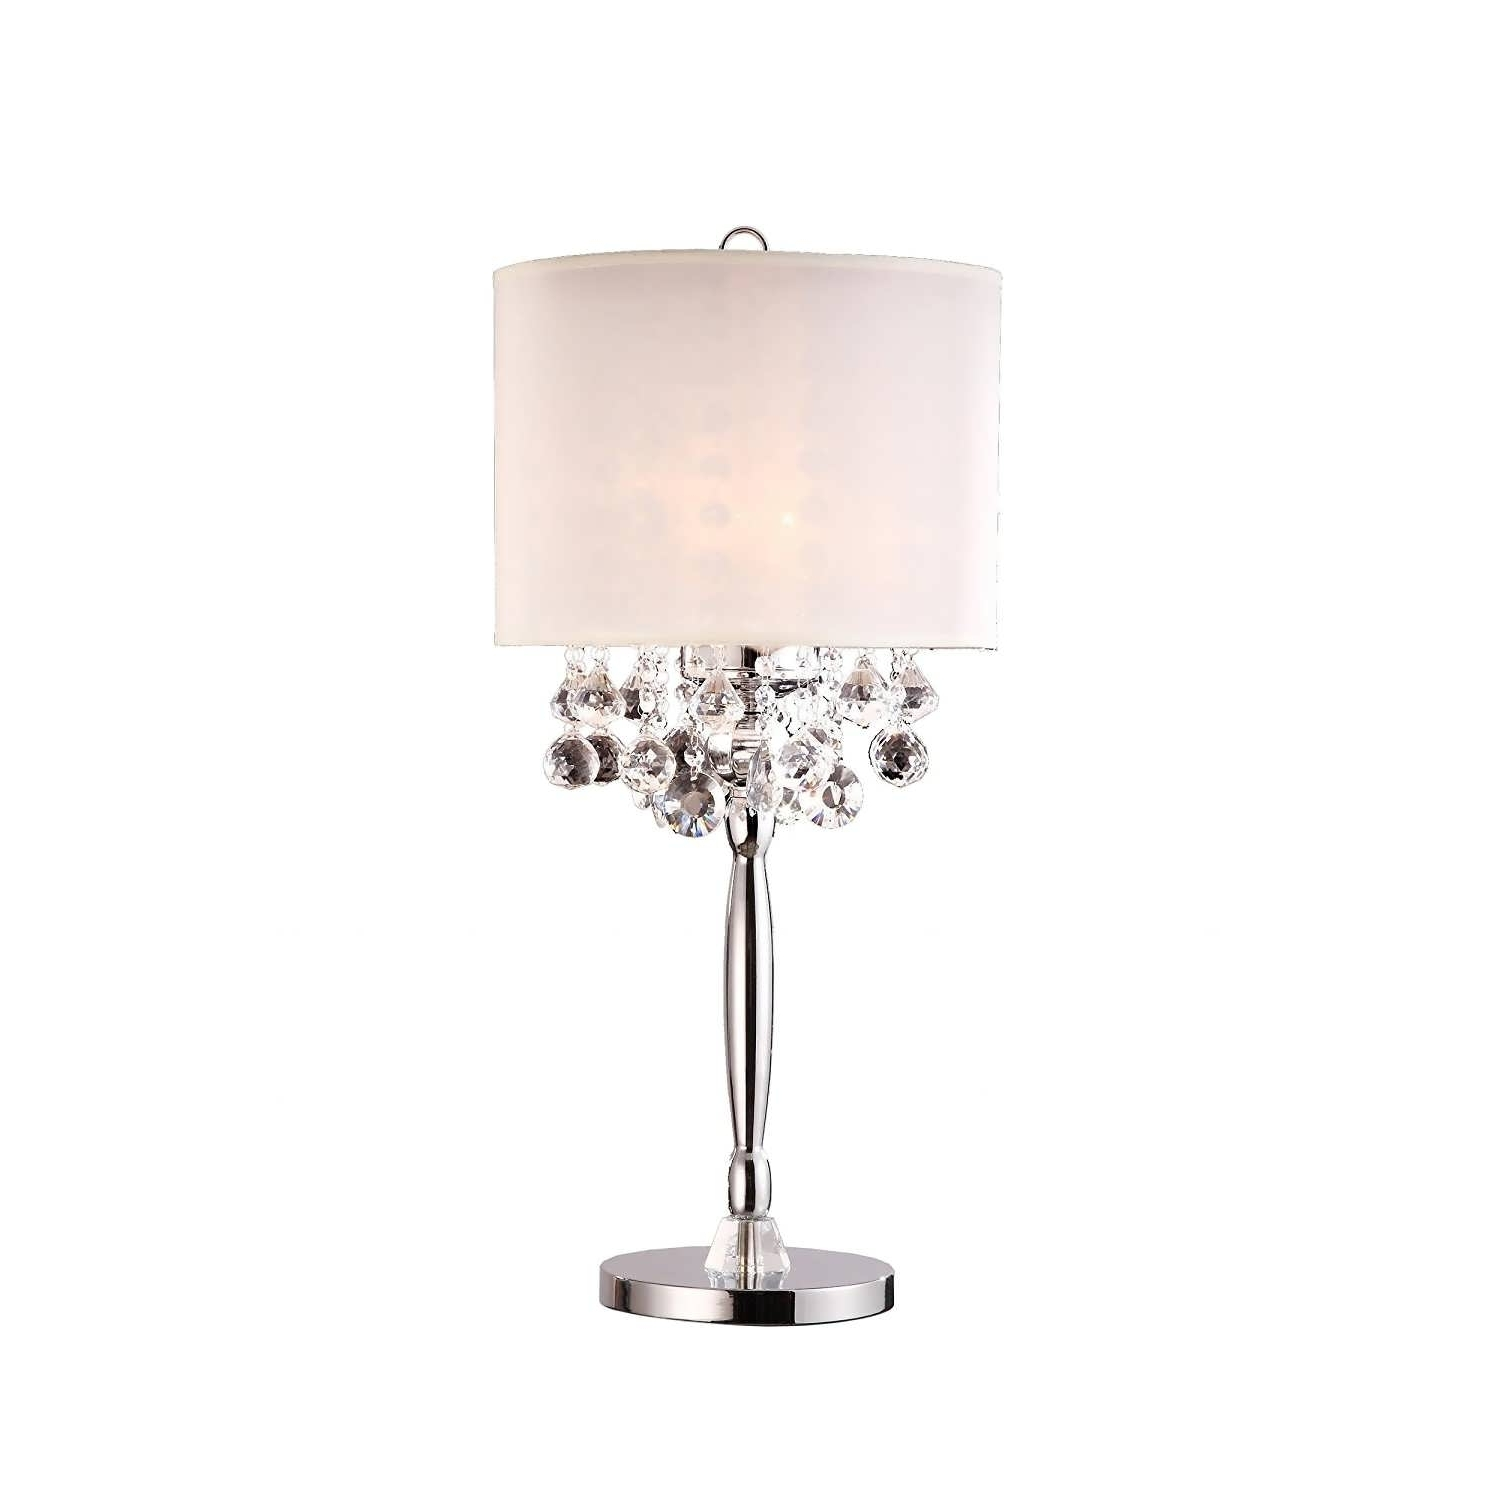 Well Known Small Crystal Chandelier Table Lamps Inside Chandelier : Ceiling Light Fixture Small Table Lamps Crystal (View 11 of 15)